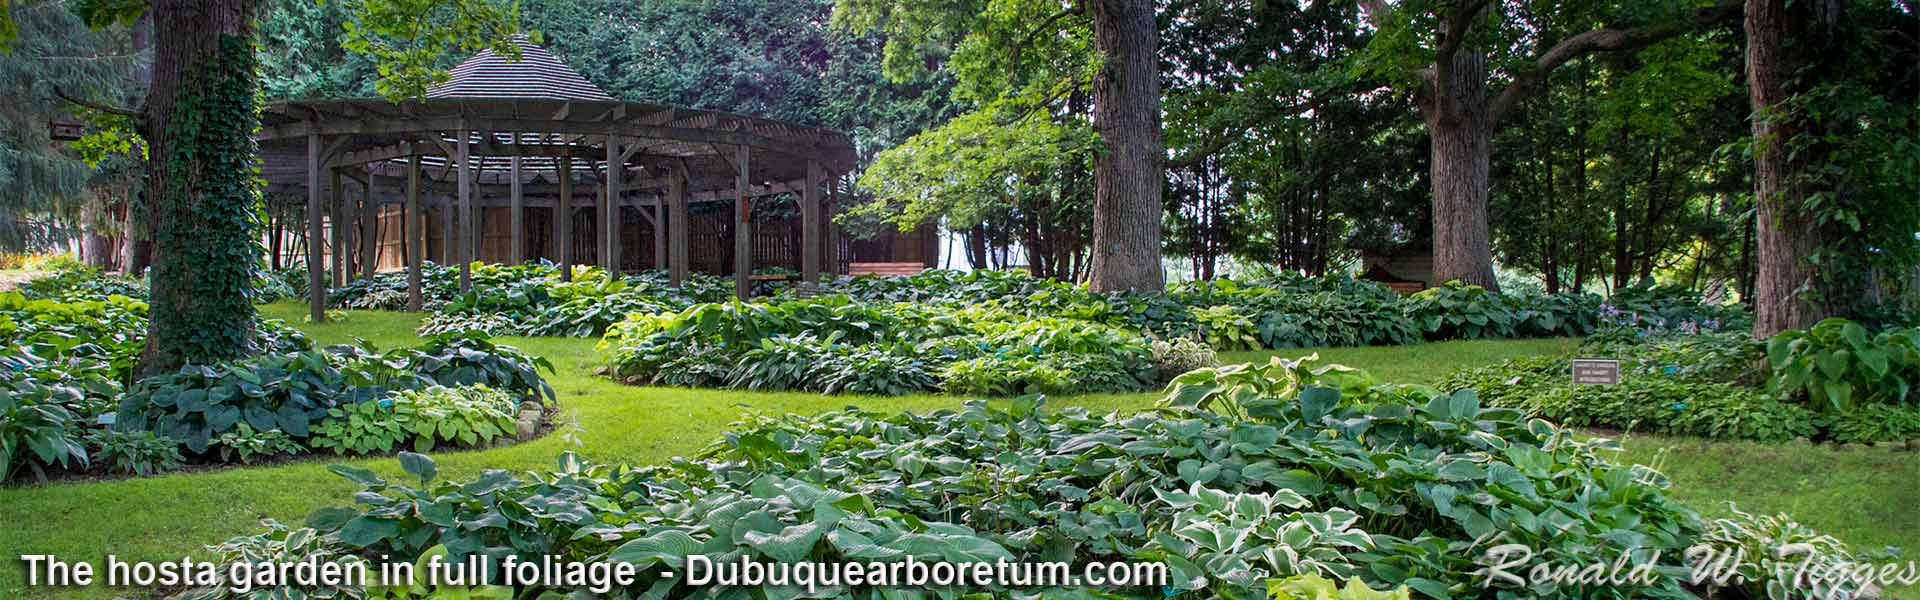 Photo galleries fans and friends of the dubuque arboretum - Dubuque arboretum and botanical gardens ...